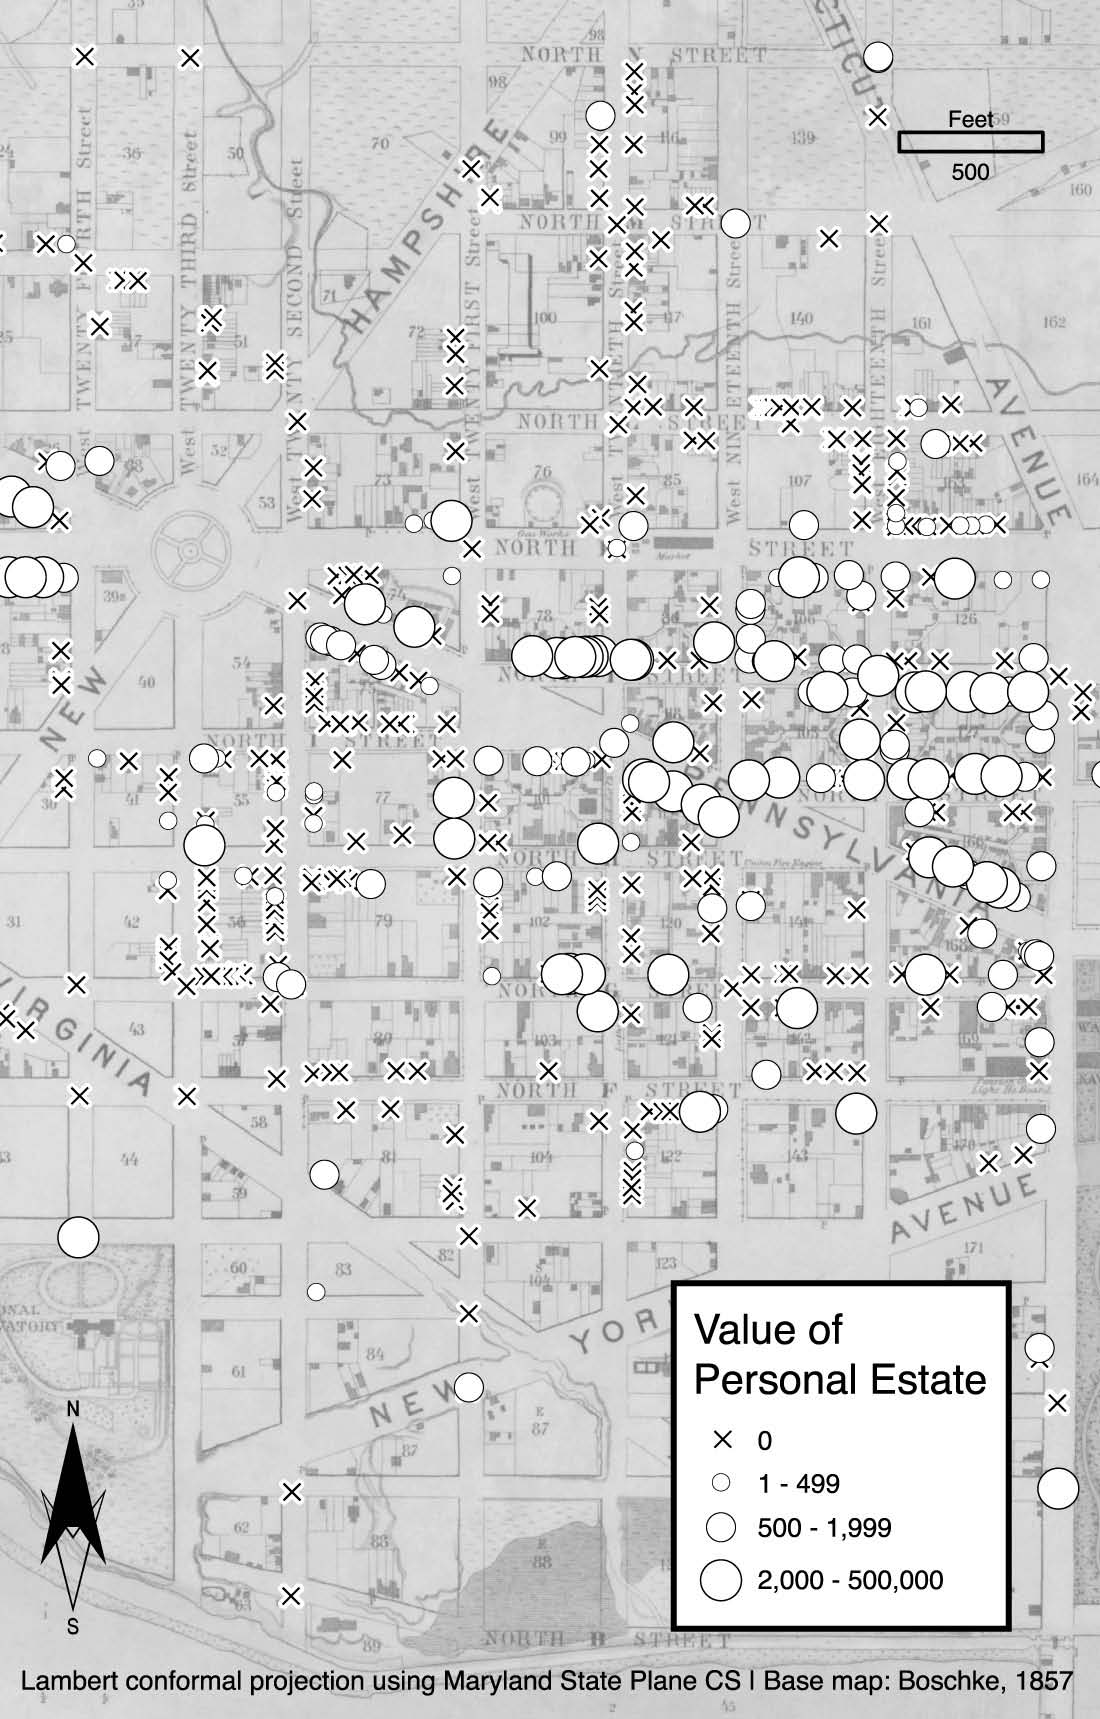 Image of a map showing personal estate values in Washington, DC's First Ward